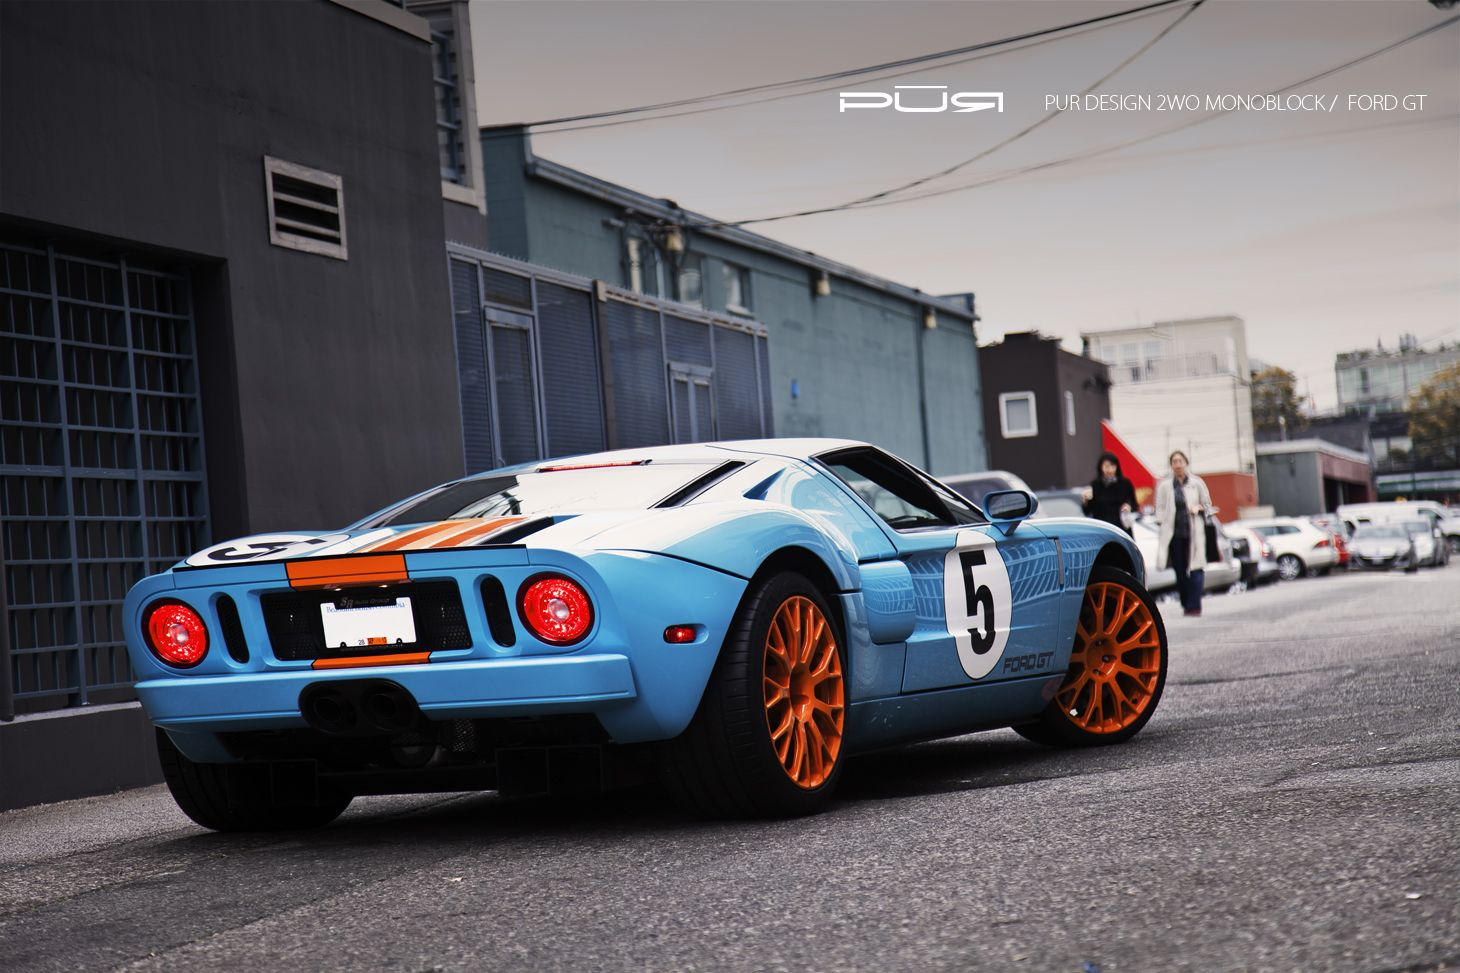 2005 Ford Gt With The Iconic Gt40 Paint Scheme Ford Gt Car Old Muscle Cars